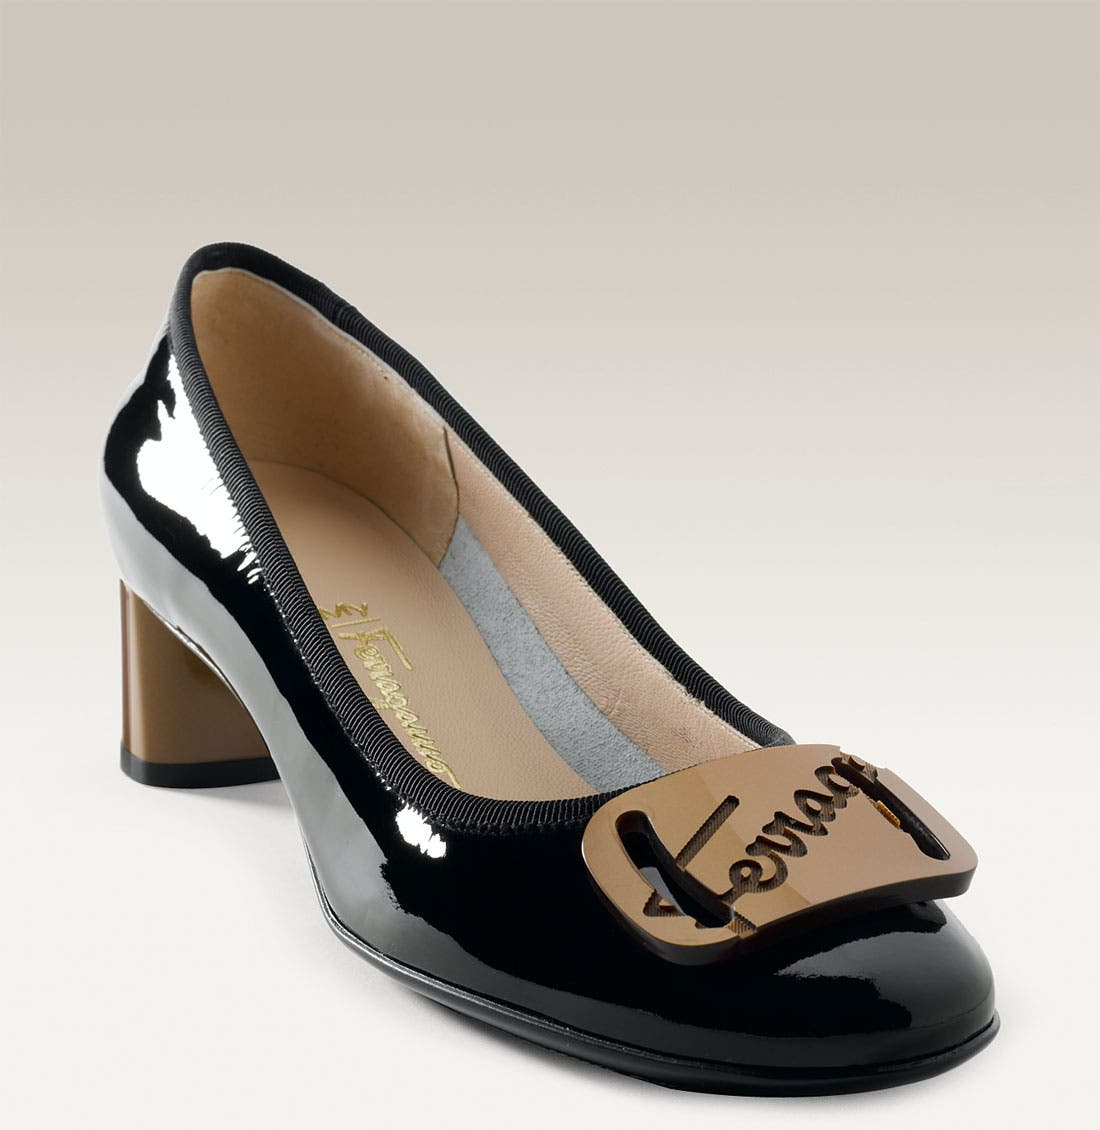 Alternate Image 1 Selected - Salvatore Ferragamo 'My Charm' Pump